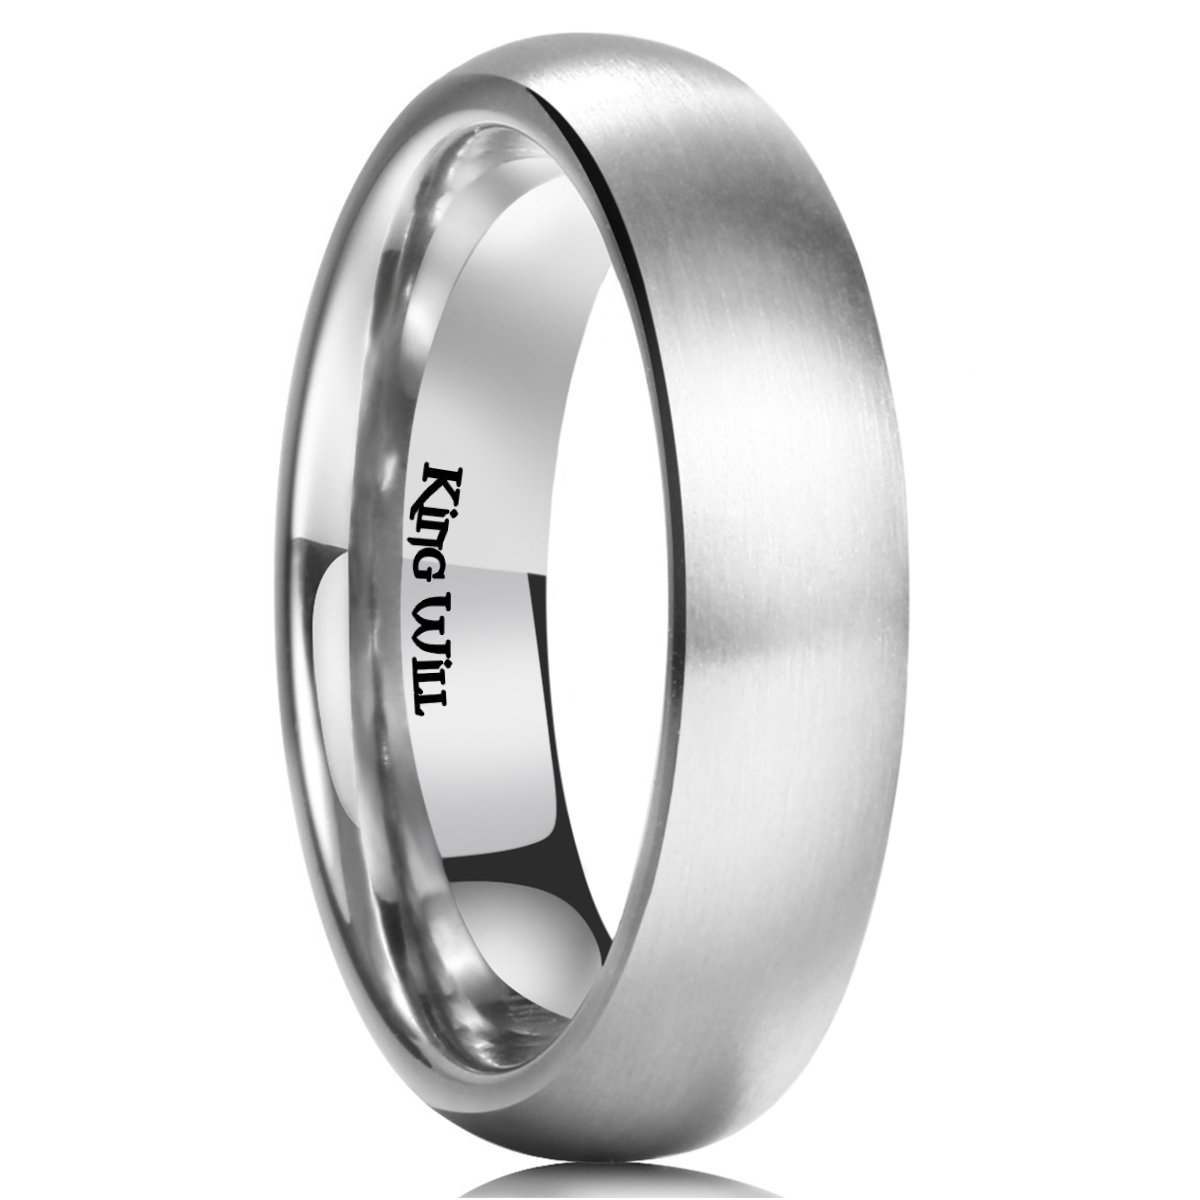 King Will Basic 5MM Titanium Ring Brushed/Matte Comfort Fit Wedding Band for Men